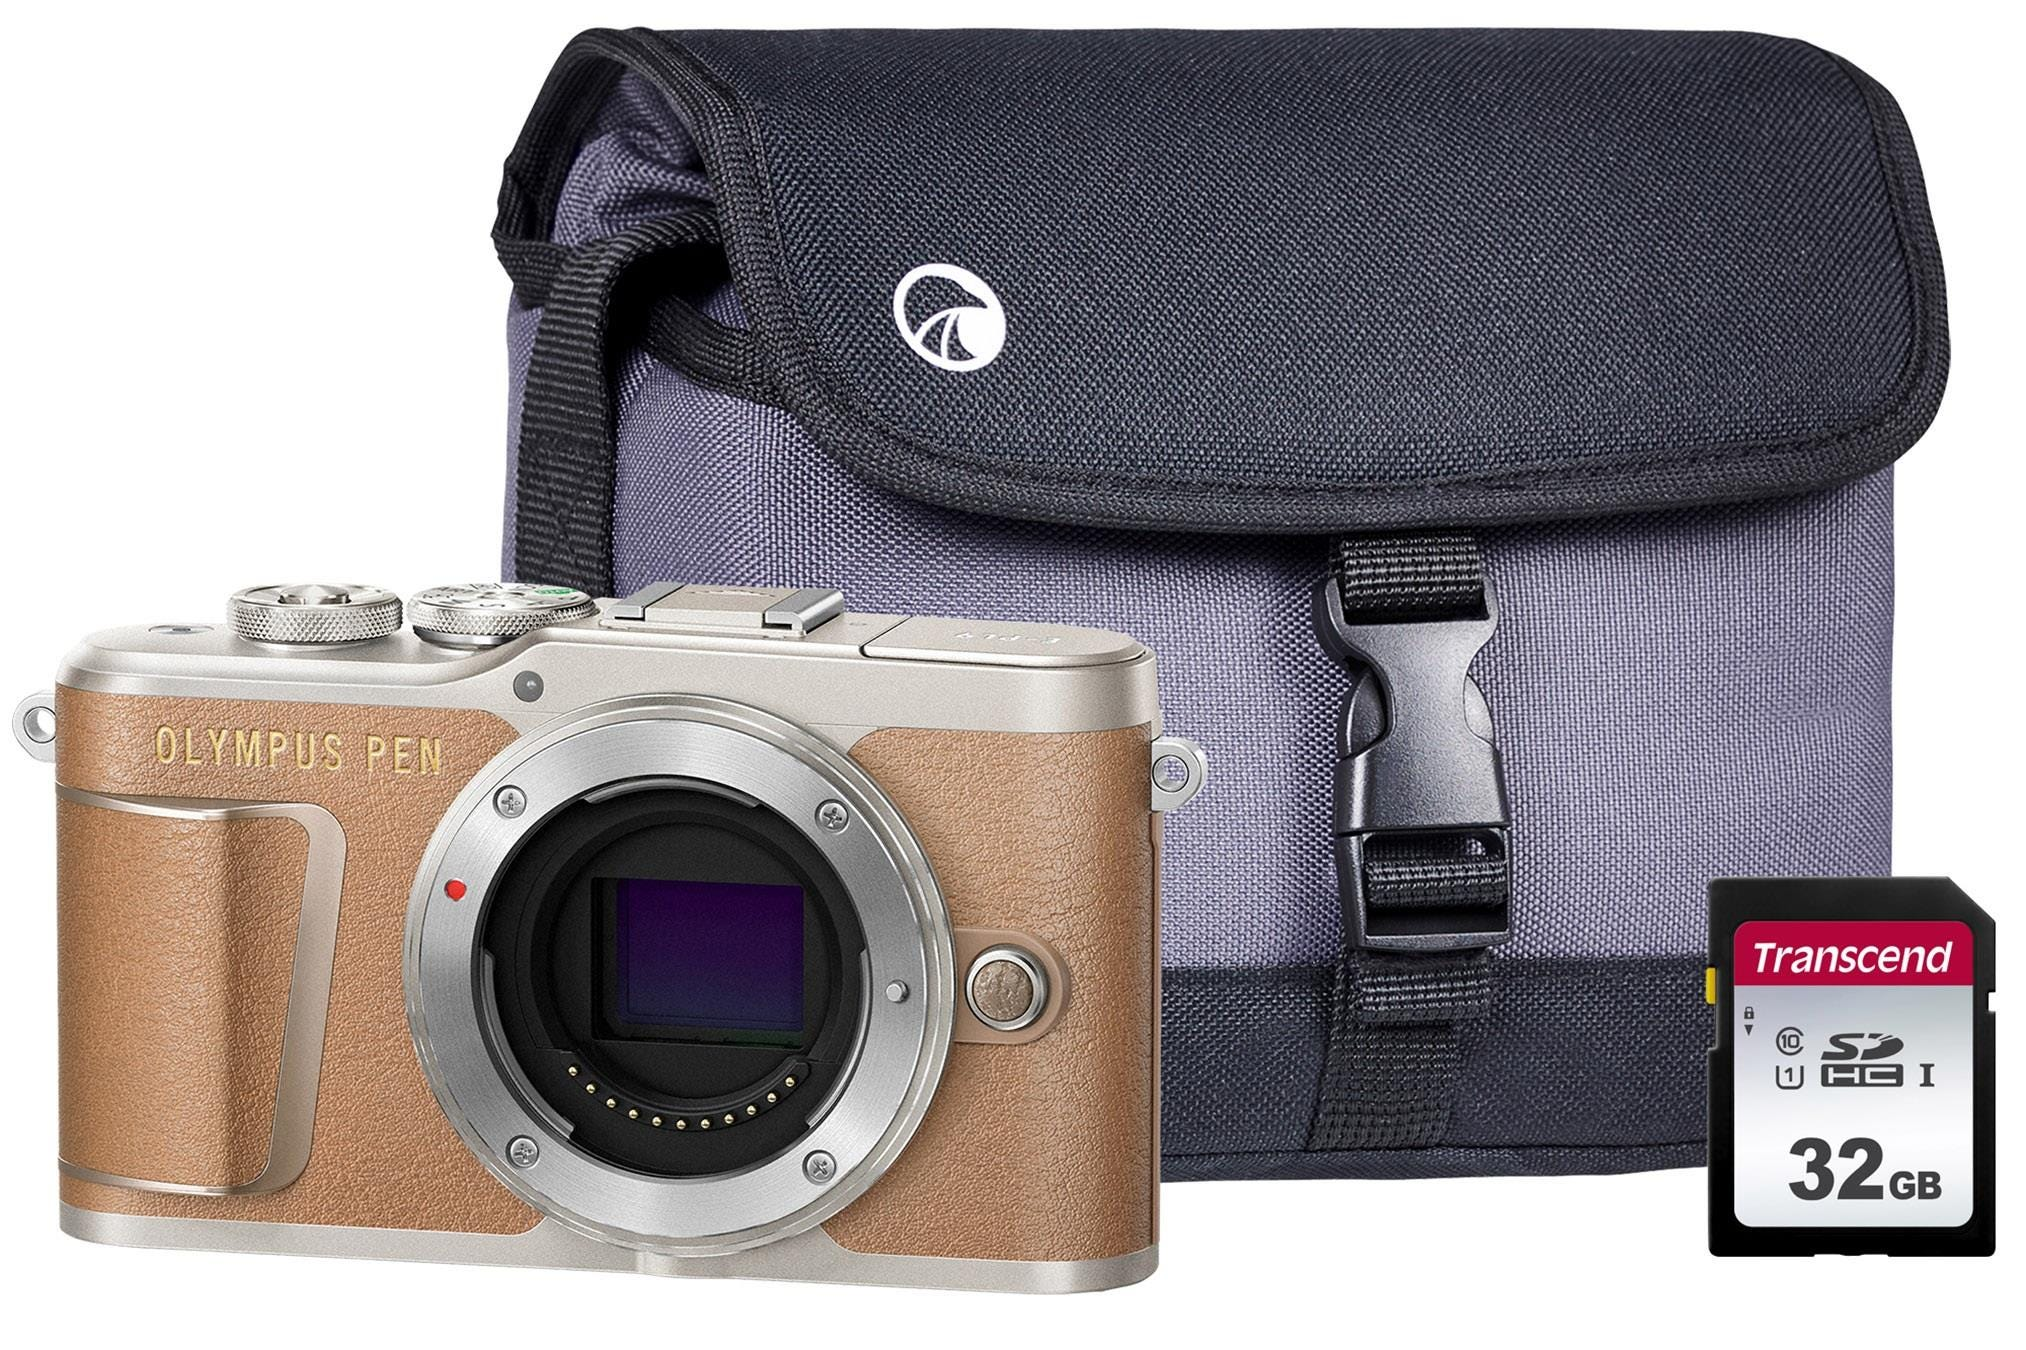 Olympus PEN E-PL9 Compact System Camera Body including Case & 32GB SD Card - Brown